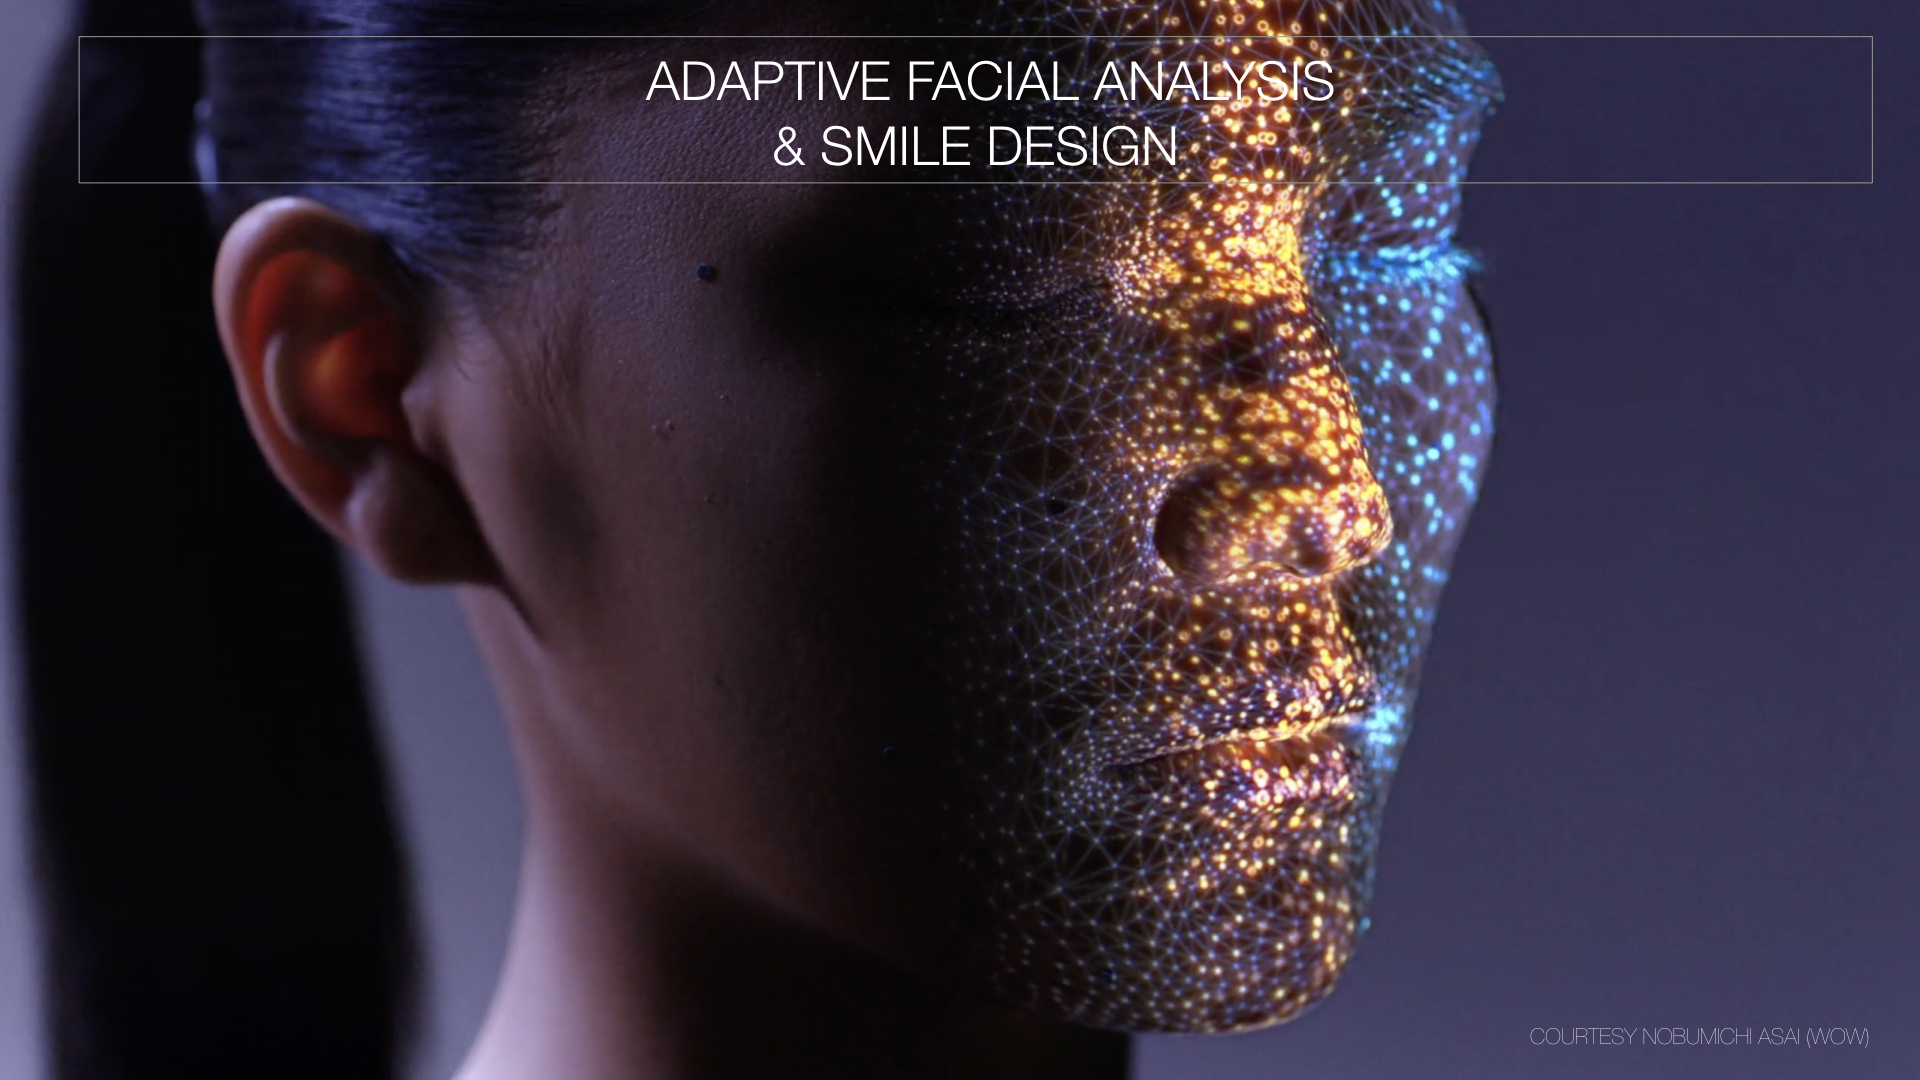 ADAPTIVE FACIAL ANALYSIS & SMILE DESIGN